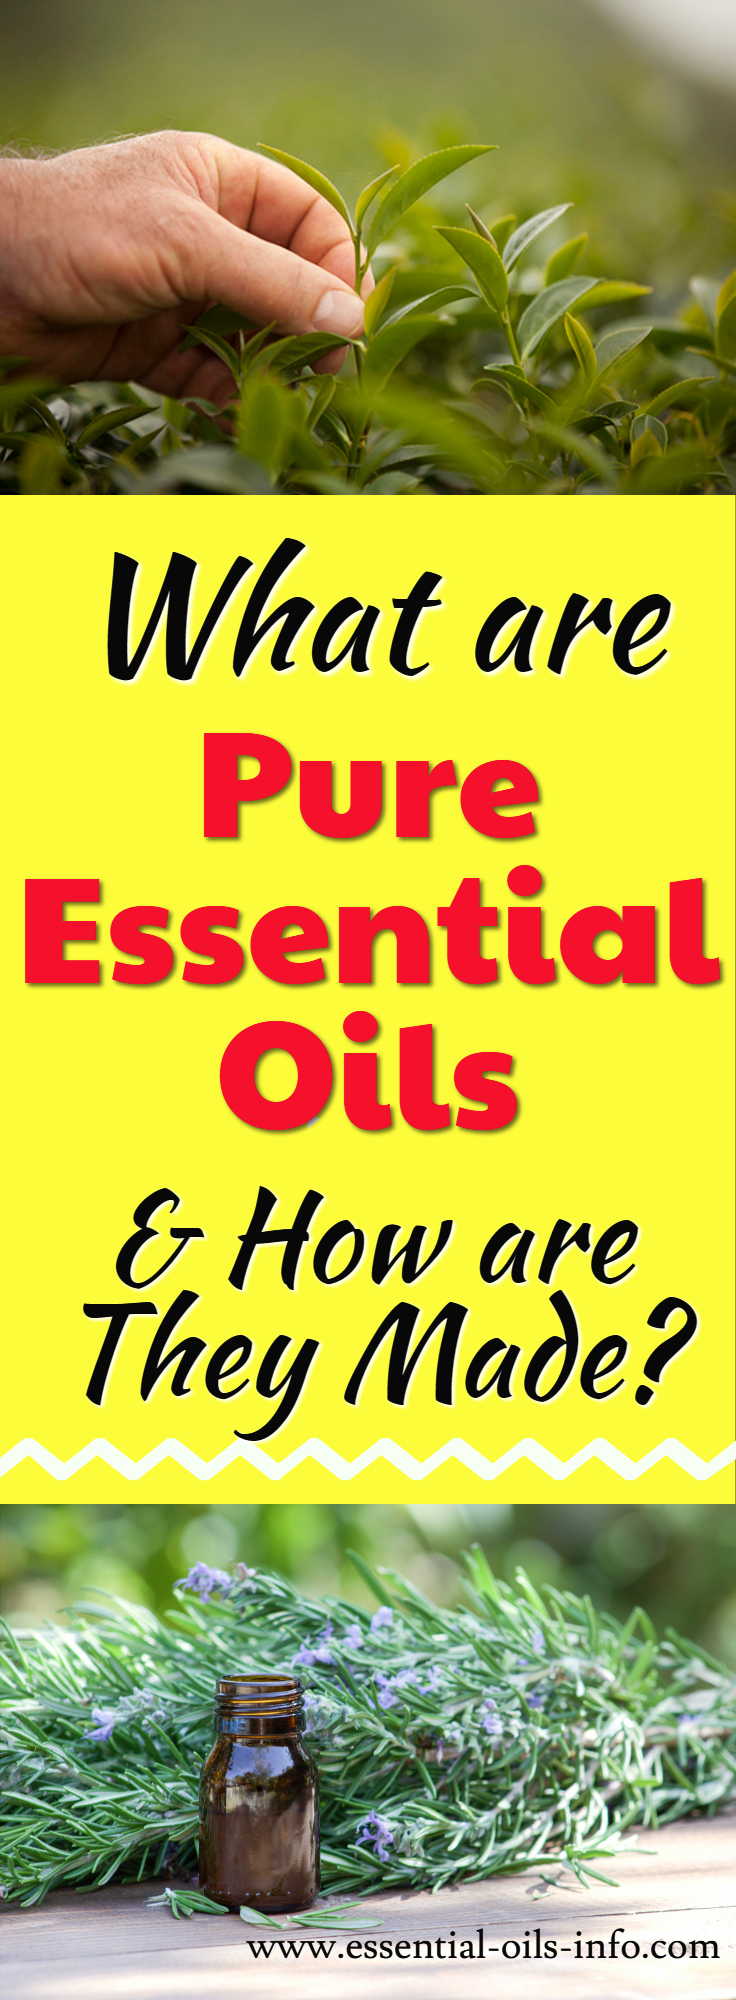 Find out what pure essential oils are and how they are made. Learn why it's important to get pure oils and how to avoid essential oils with chemical additives. Make sure you only use pure oils on your family members and pets!